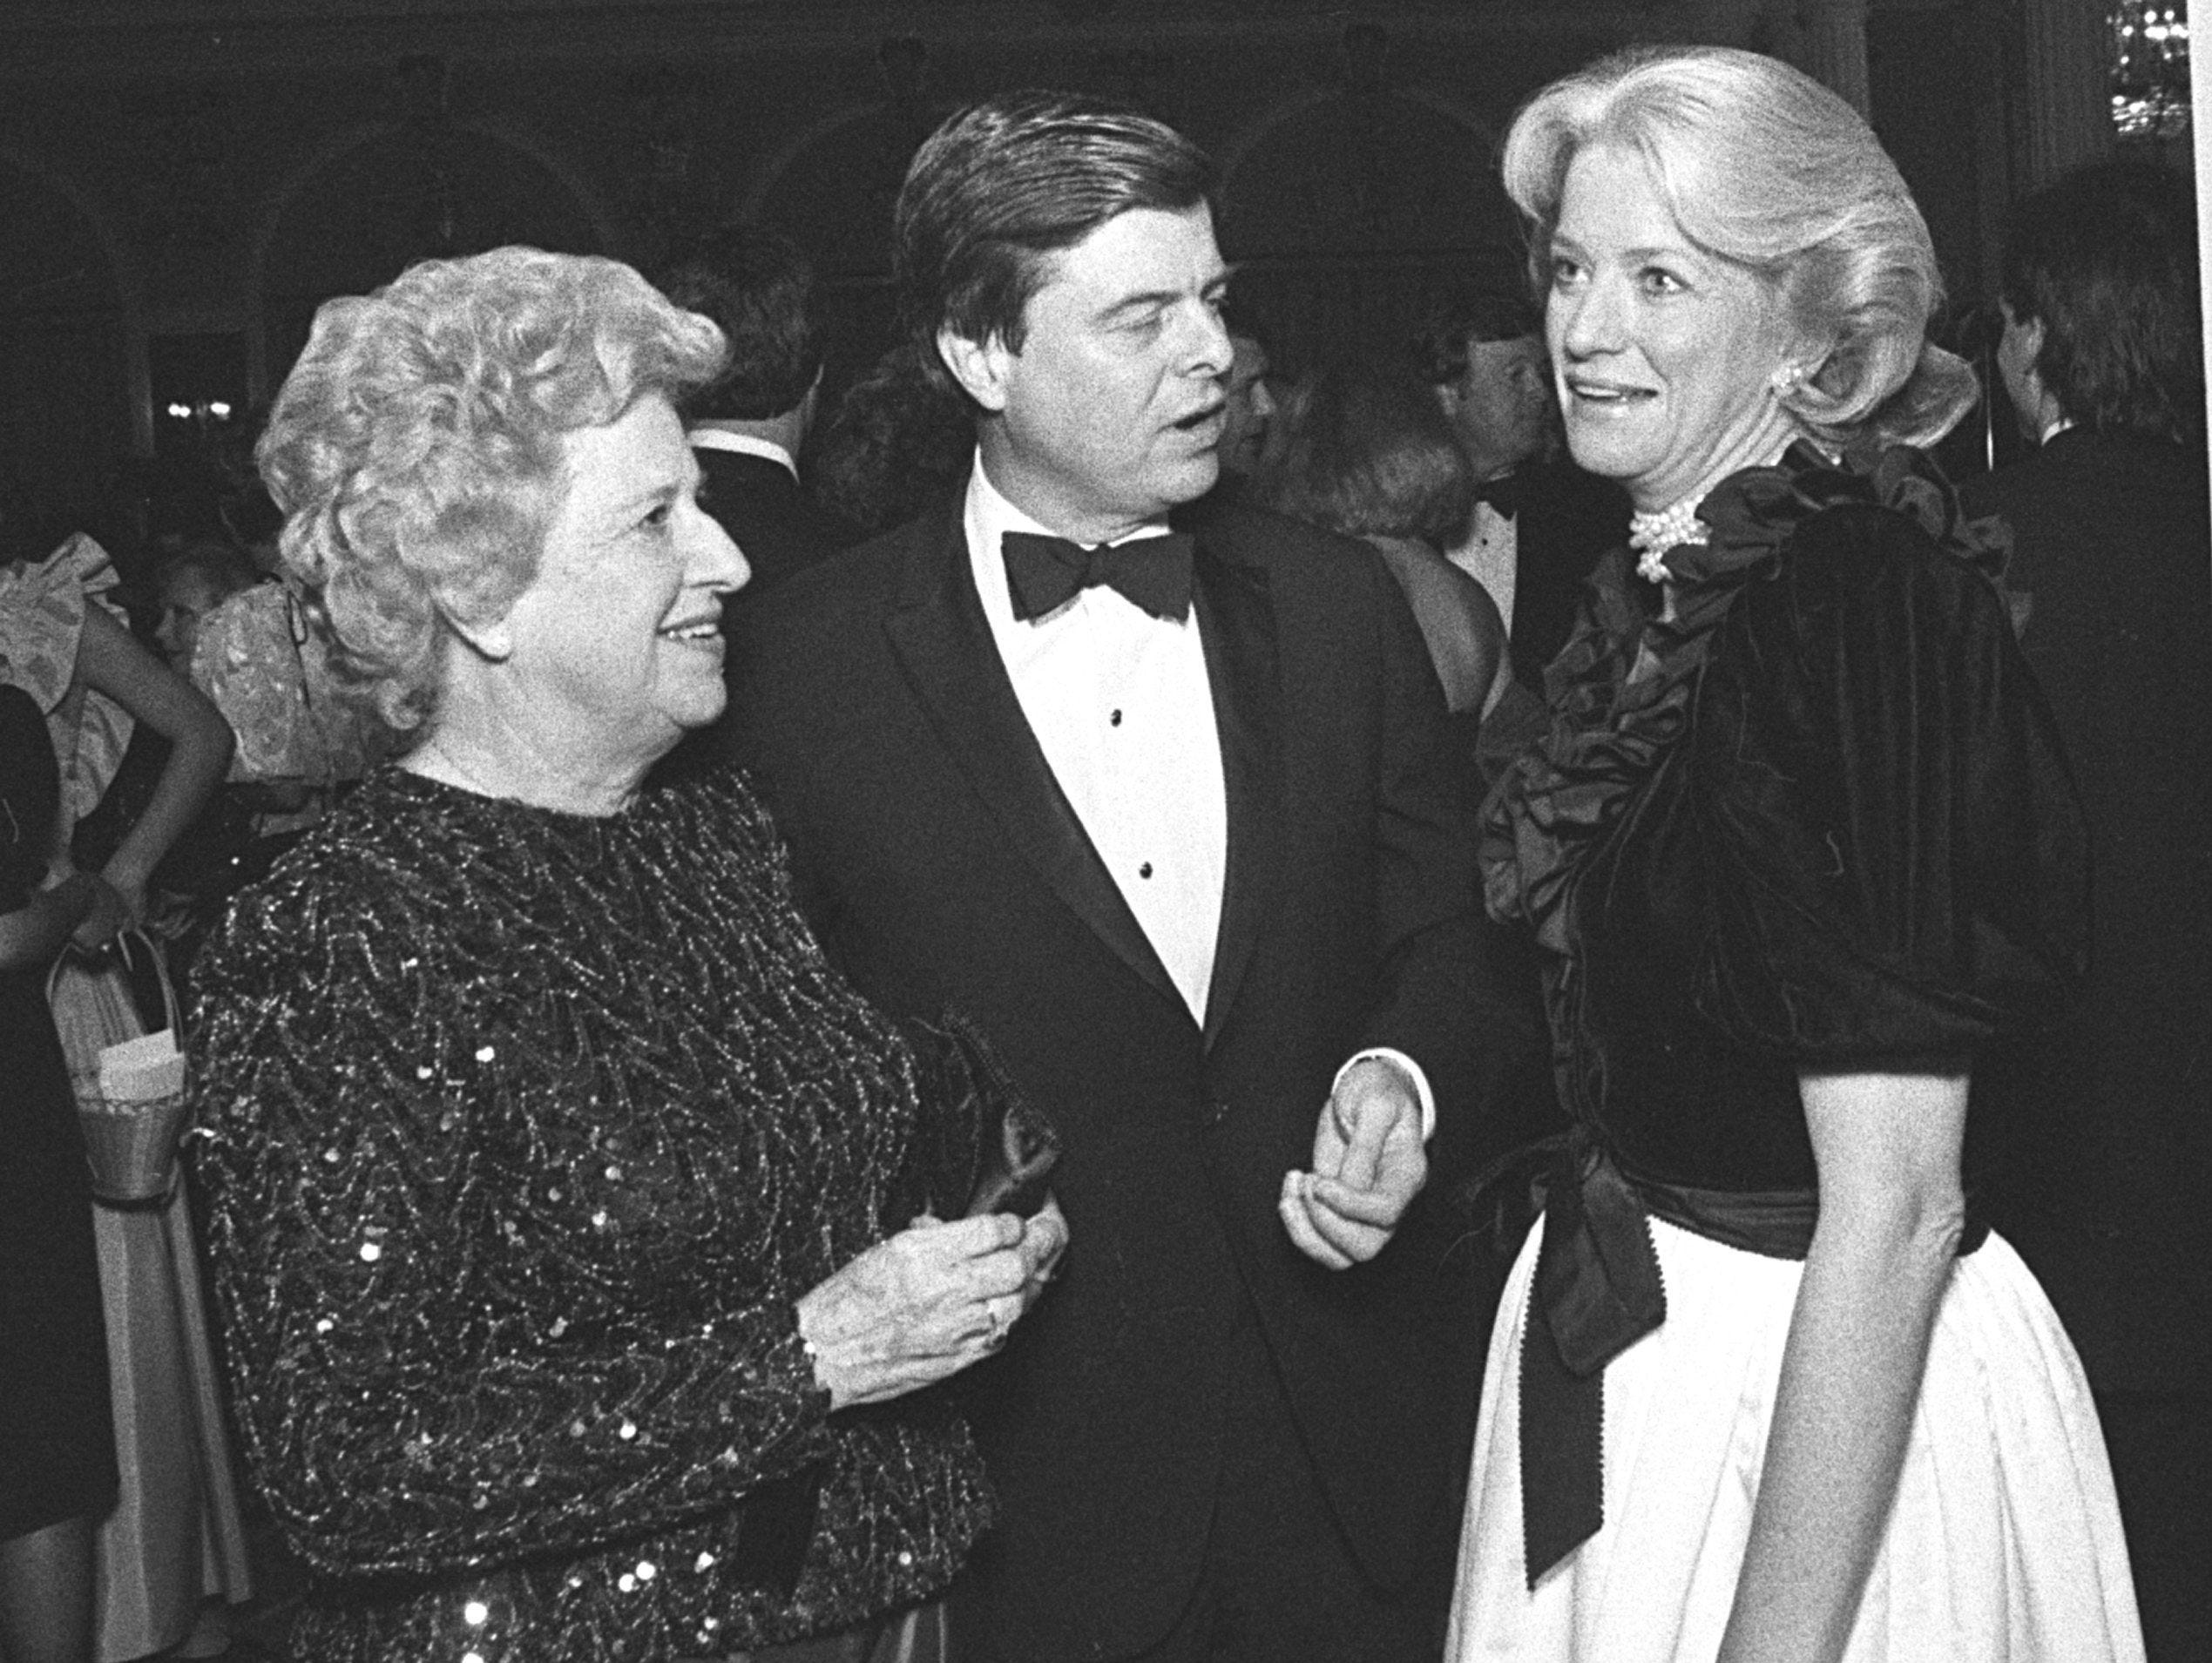 Mrs. Mary Nell Sasser (Left) attended the Symphony Ball on 9 Oct 1983 with her son and daughter-in-law, Sen. and Mrs. Jim Sasser.  The ball raised close to $250,000 for the Memphis Symphony Orchestra, according to ball chairman Deloss Walker (Not Shown).files.